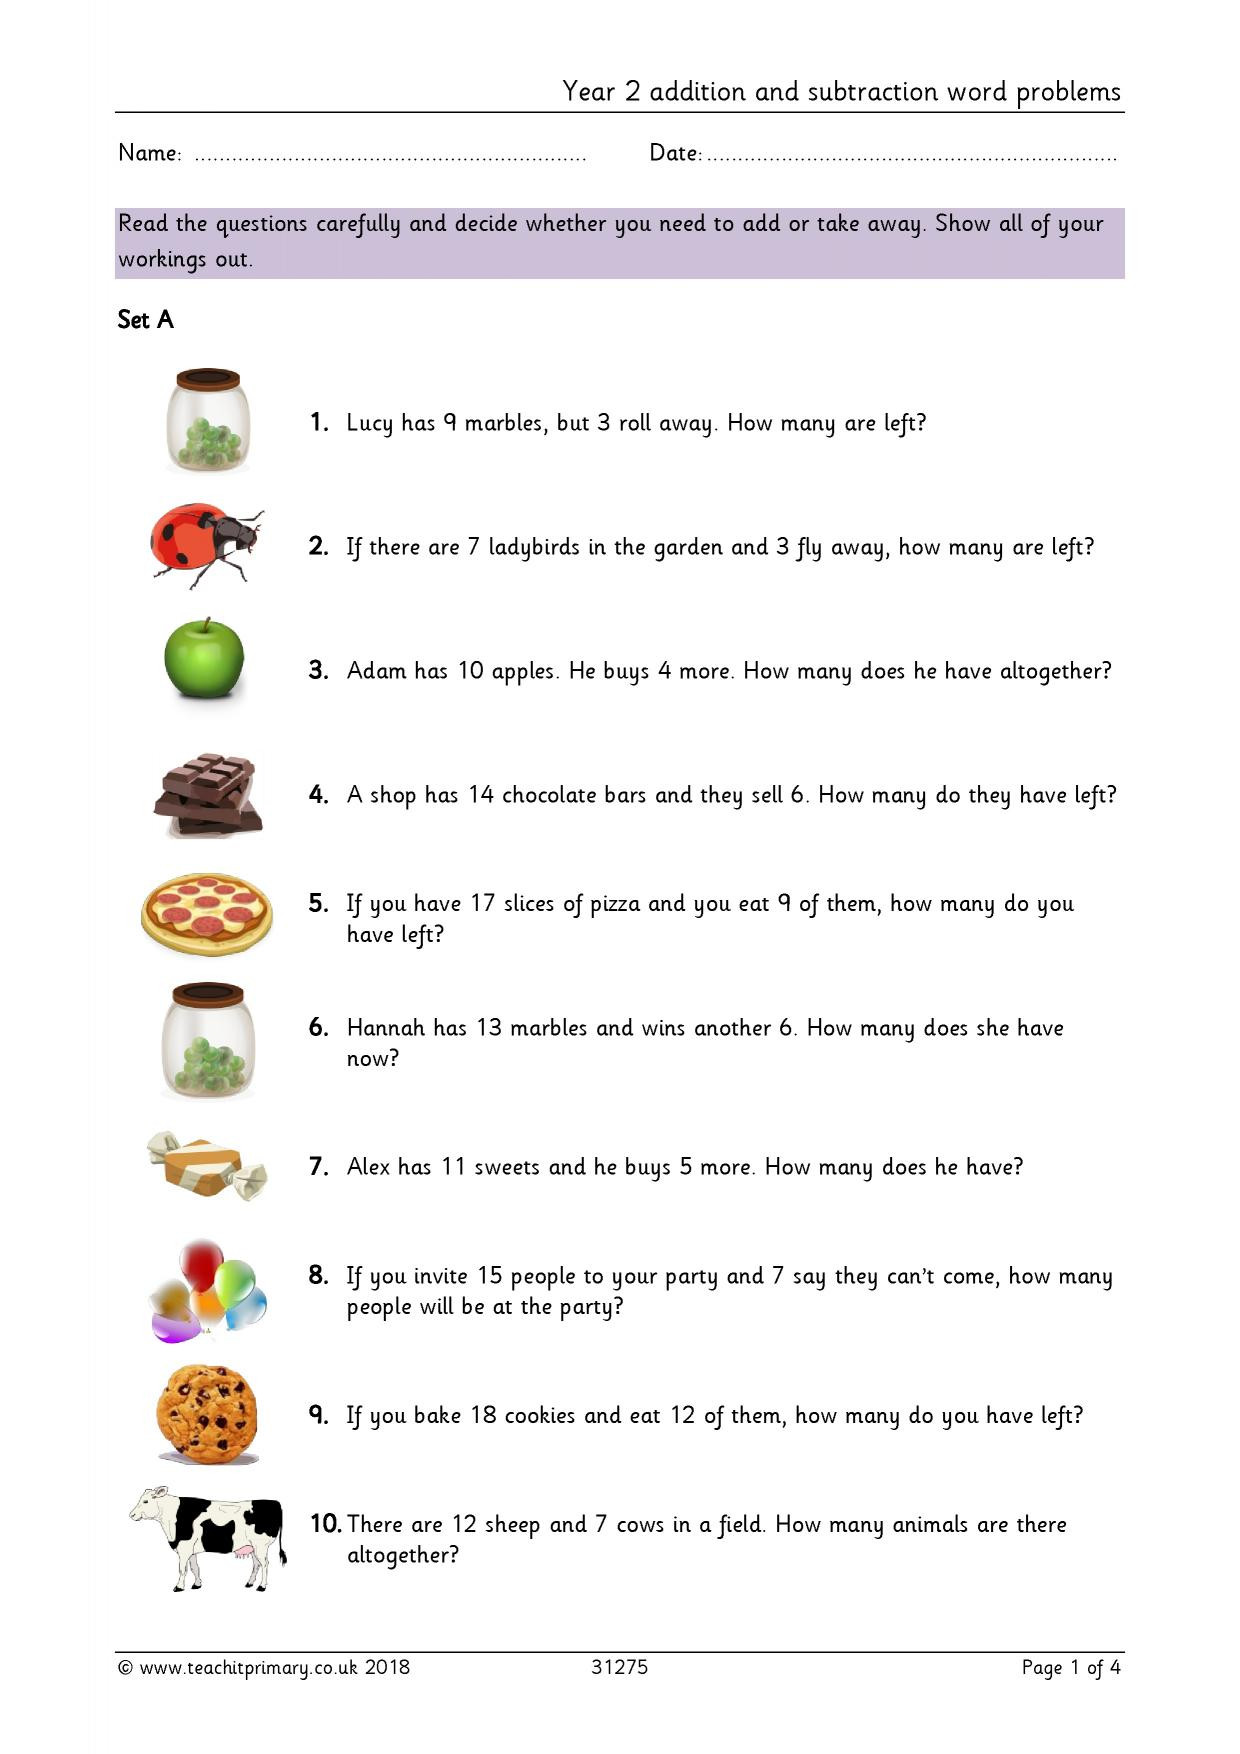 Age Word Problems Worksheet Year 2 Addition and Subtraction Word Problems